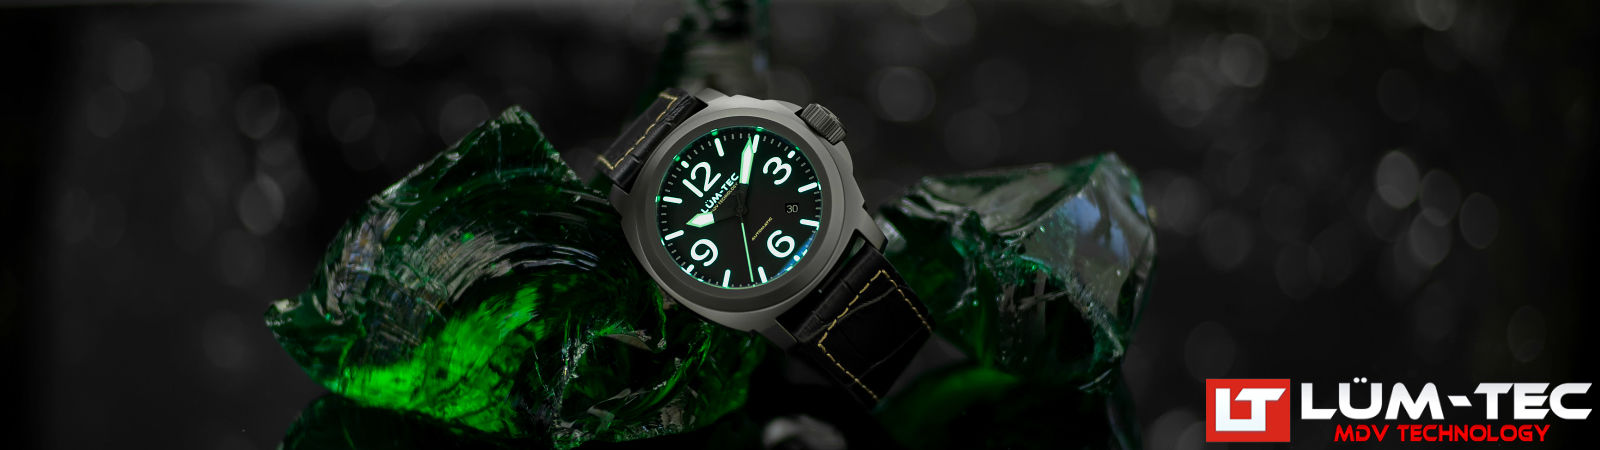 Lum-Tec M80 Watch available at Sportique.com